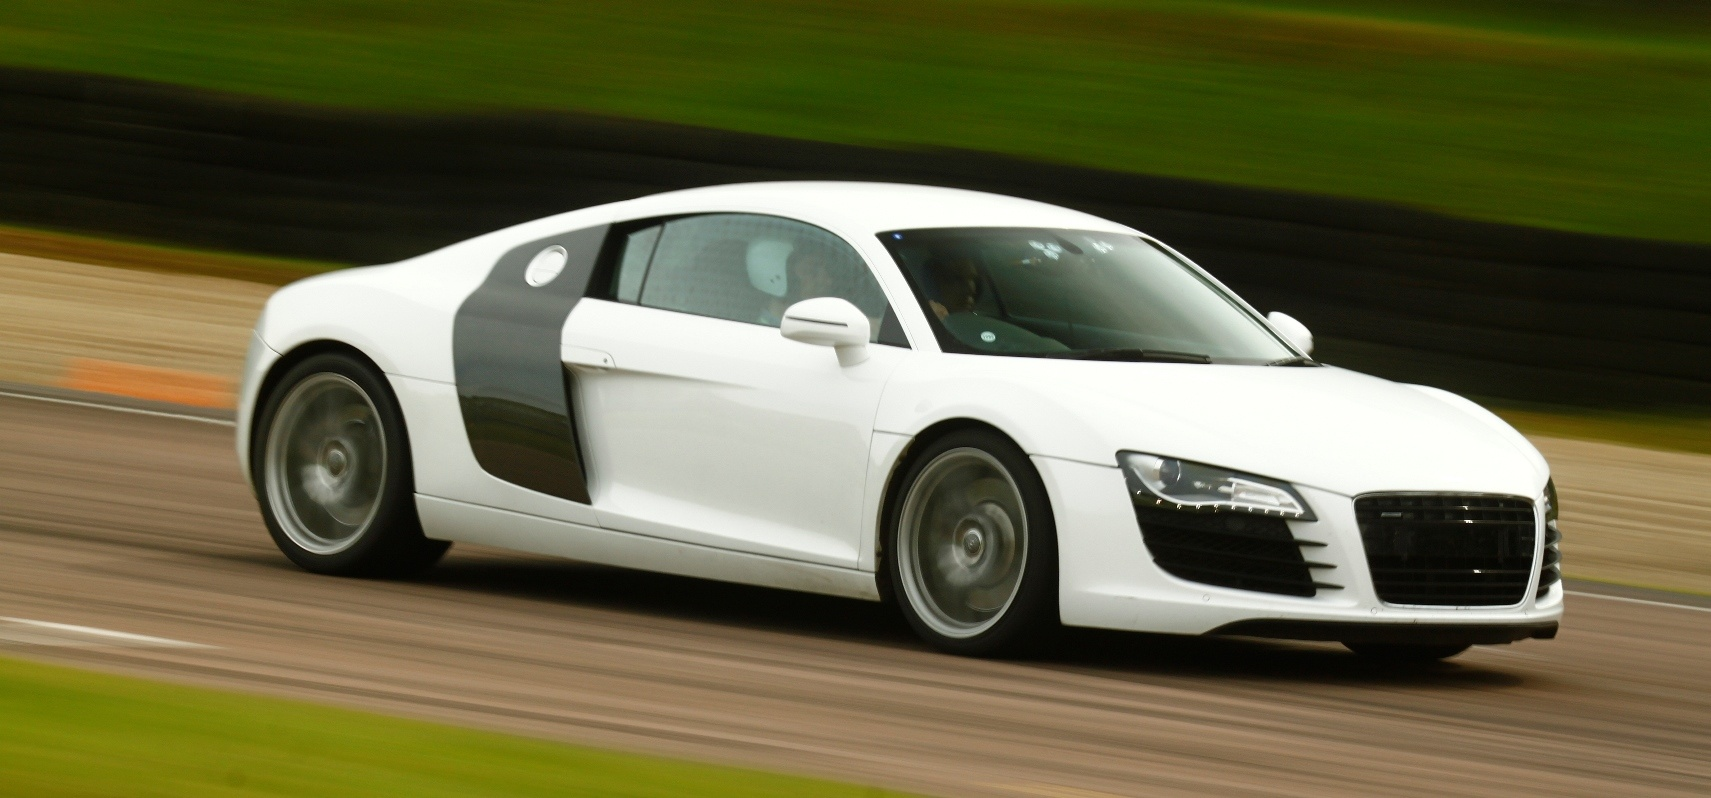 Iron Man Audi R8 6 Mile Driving Experience-3